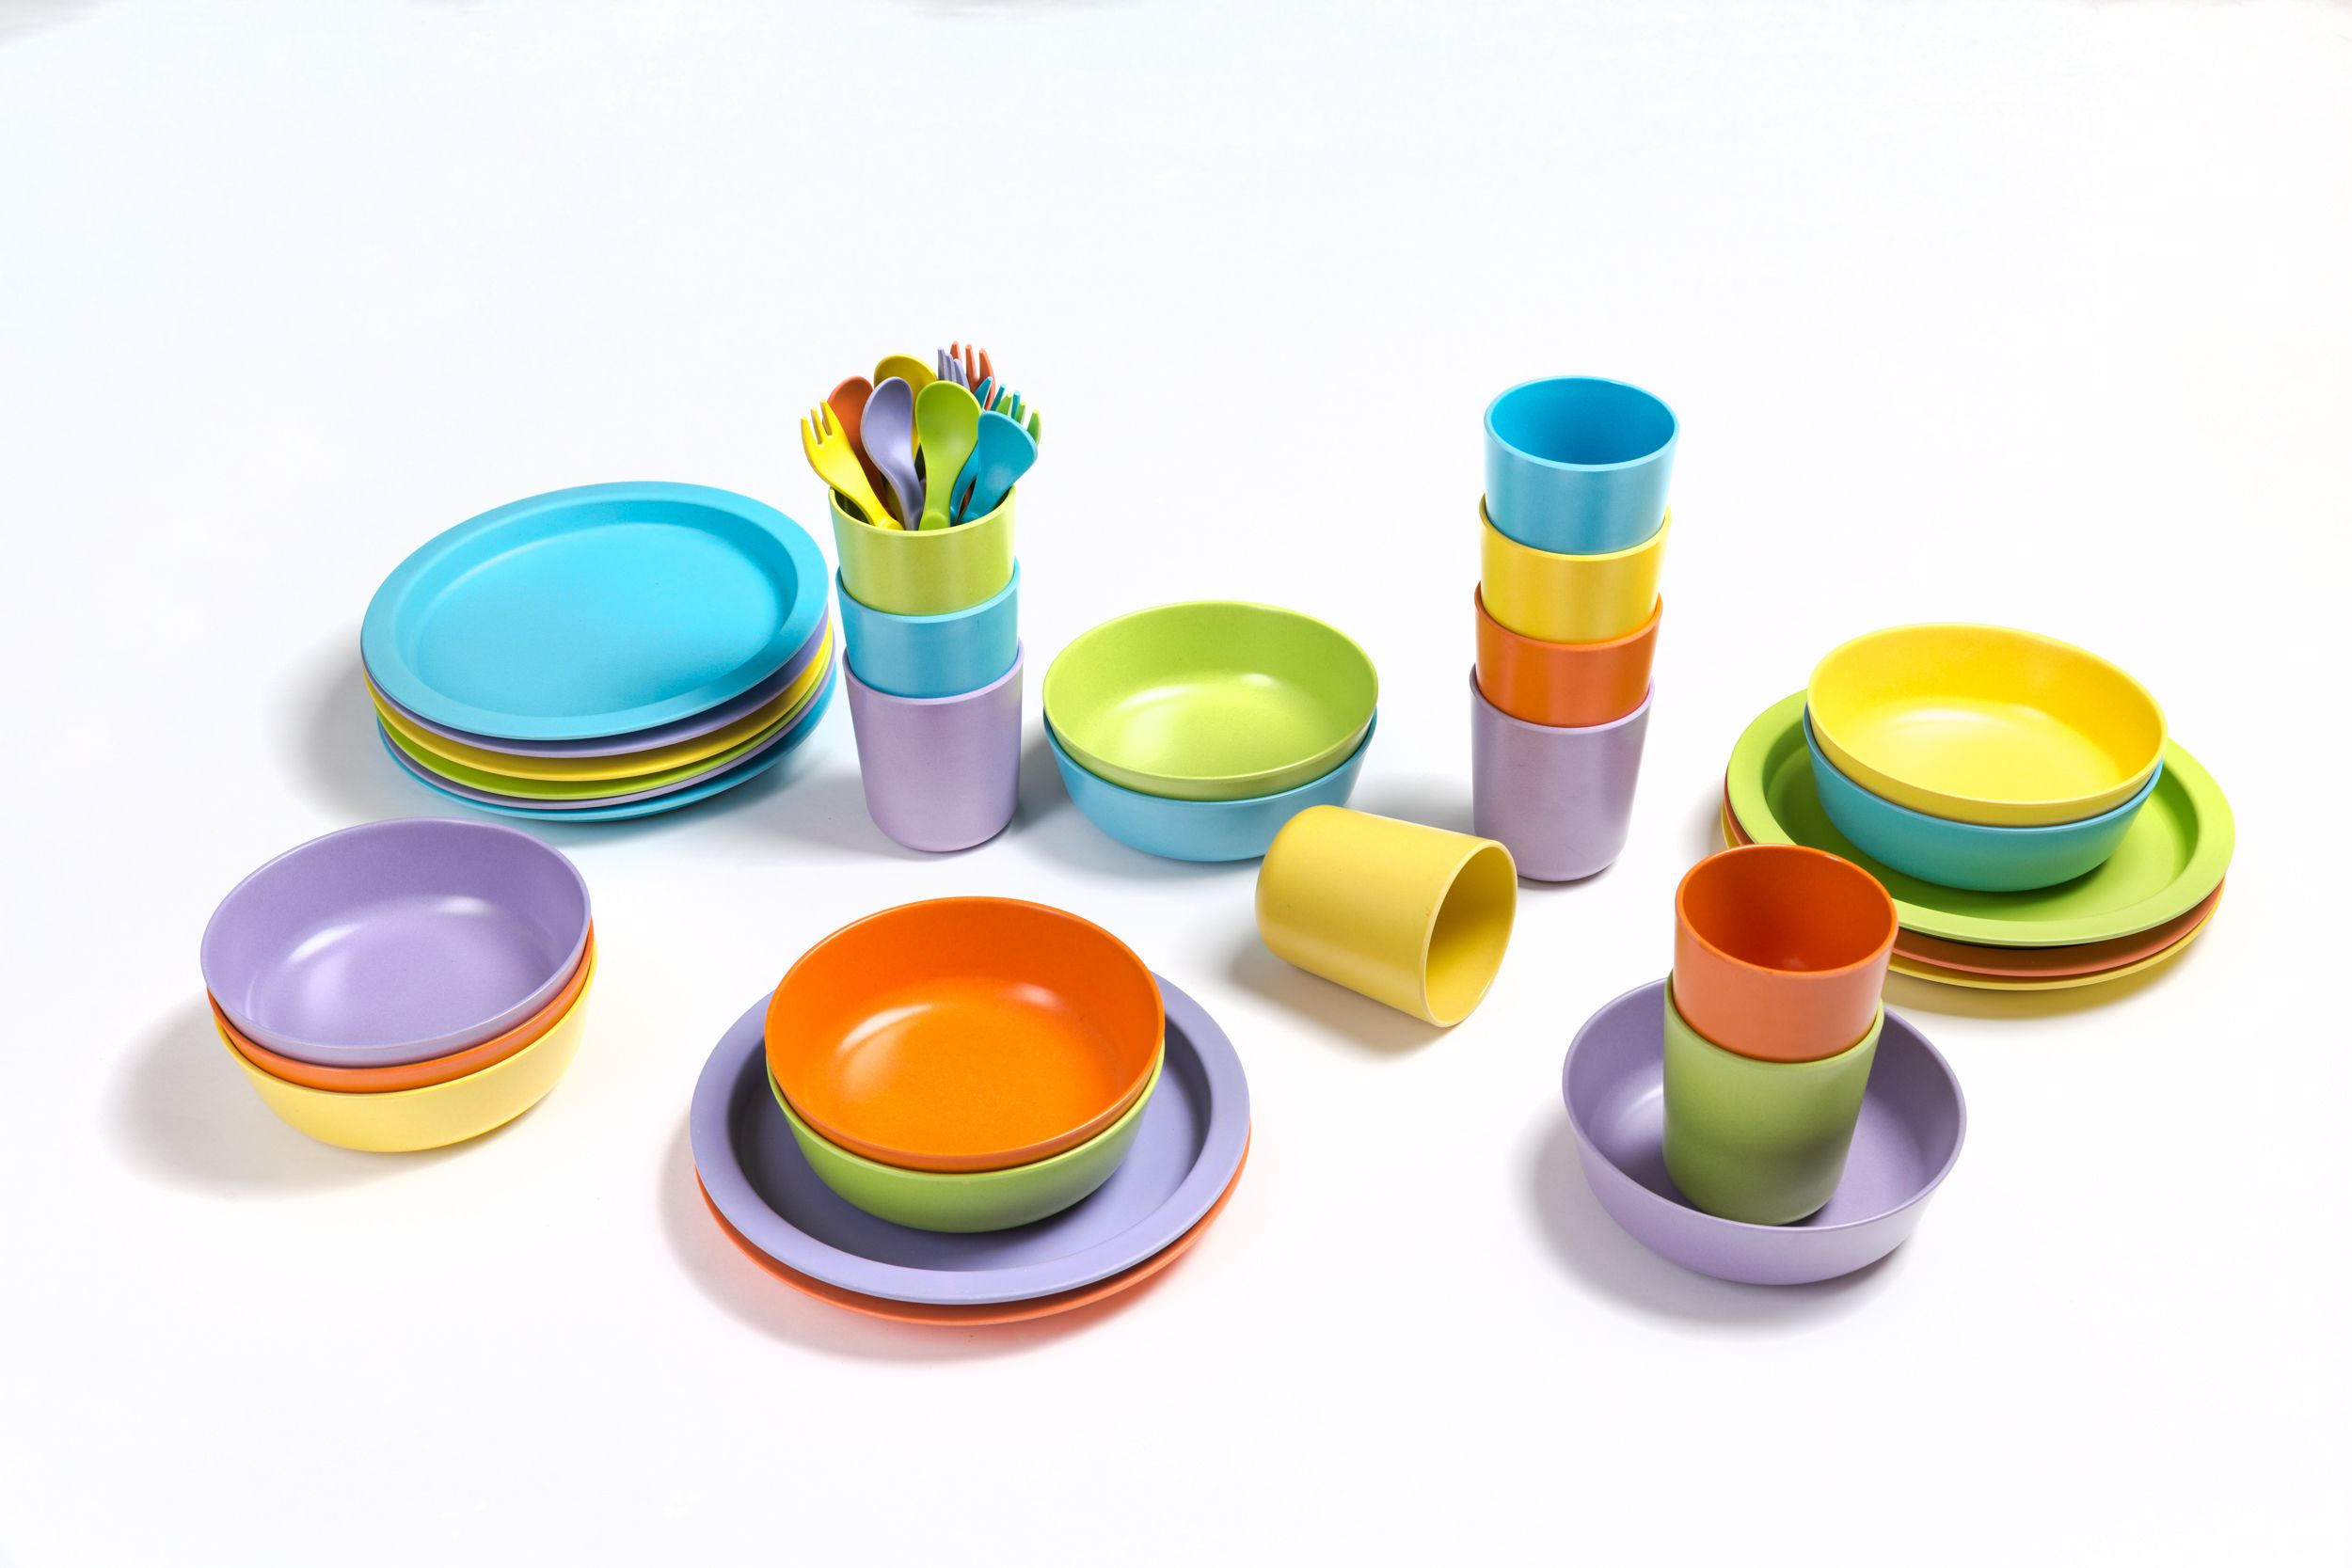 Isoboo Bamboo Bamboo Dinnerware For Children Available In Fun Colours Plastic Free Biodegradable Toxin With Images Biodegradable Products Kids Dinnerware Dinnerware